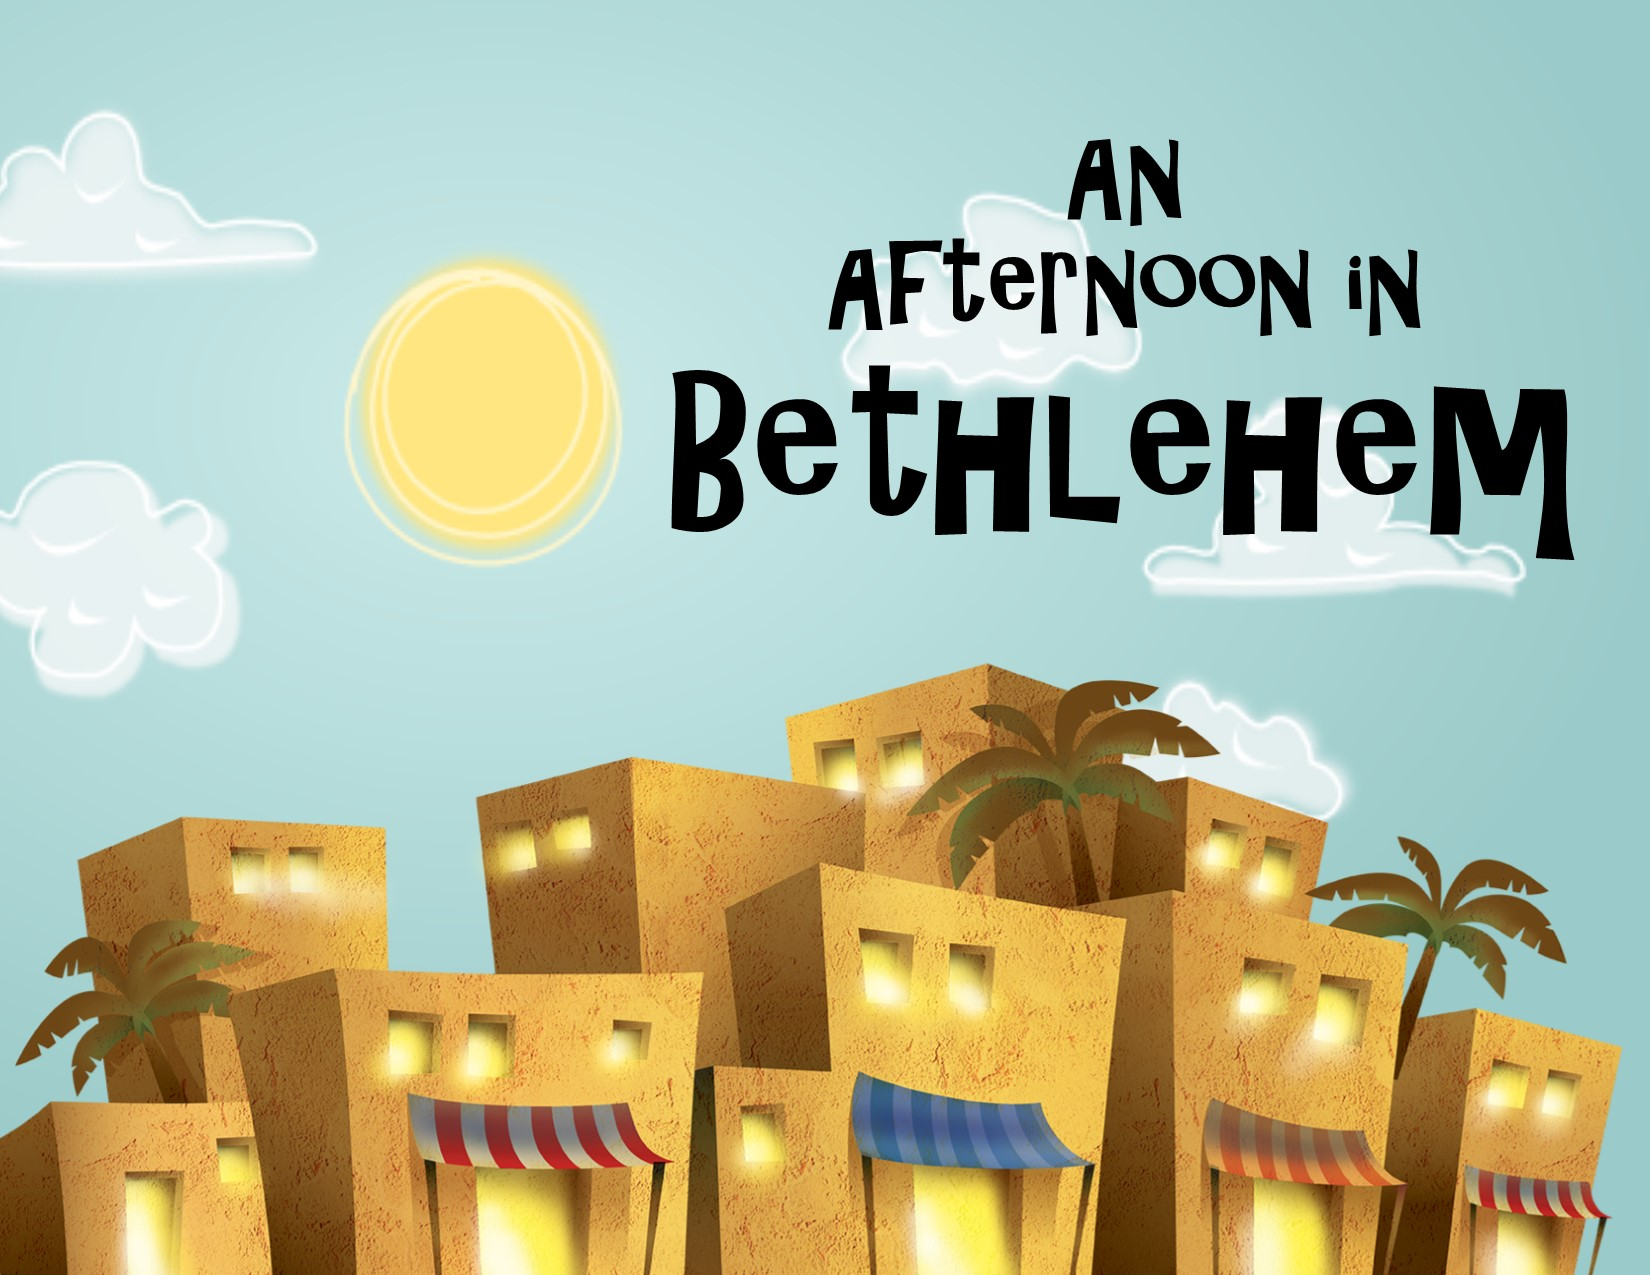 An Afternoon in Bethlehem